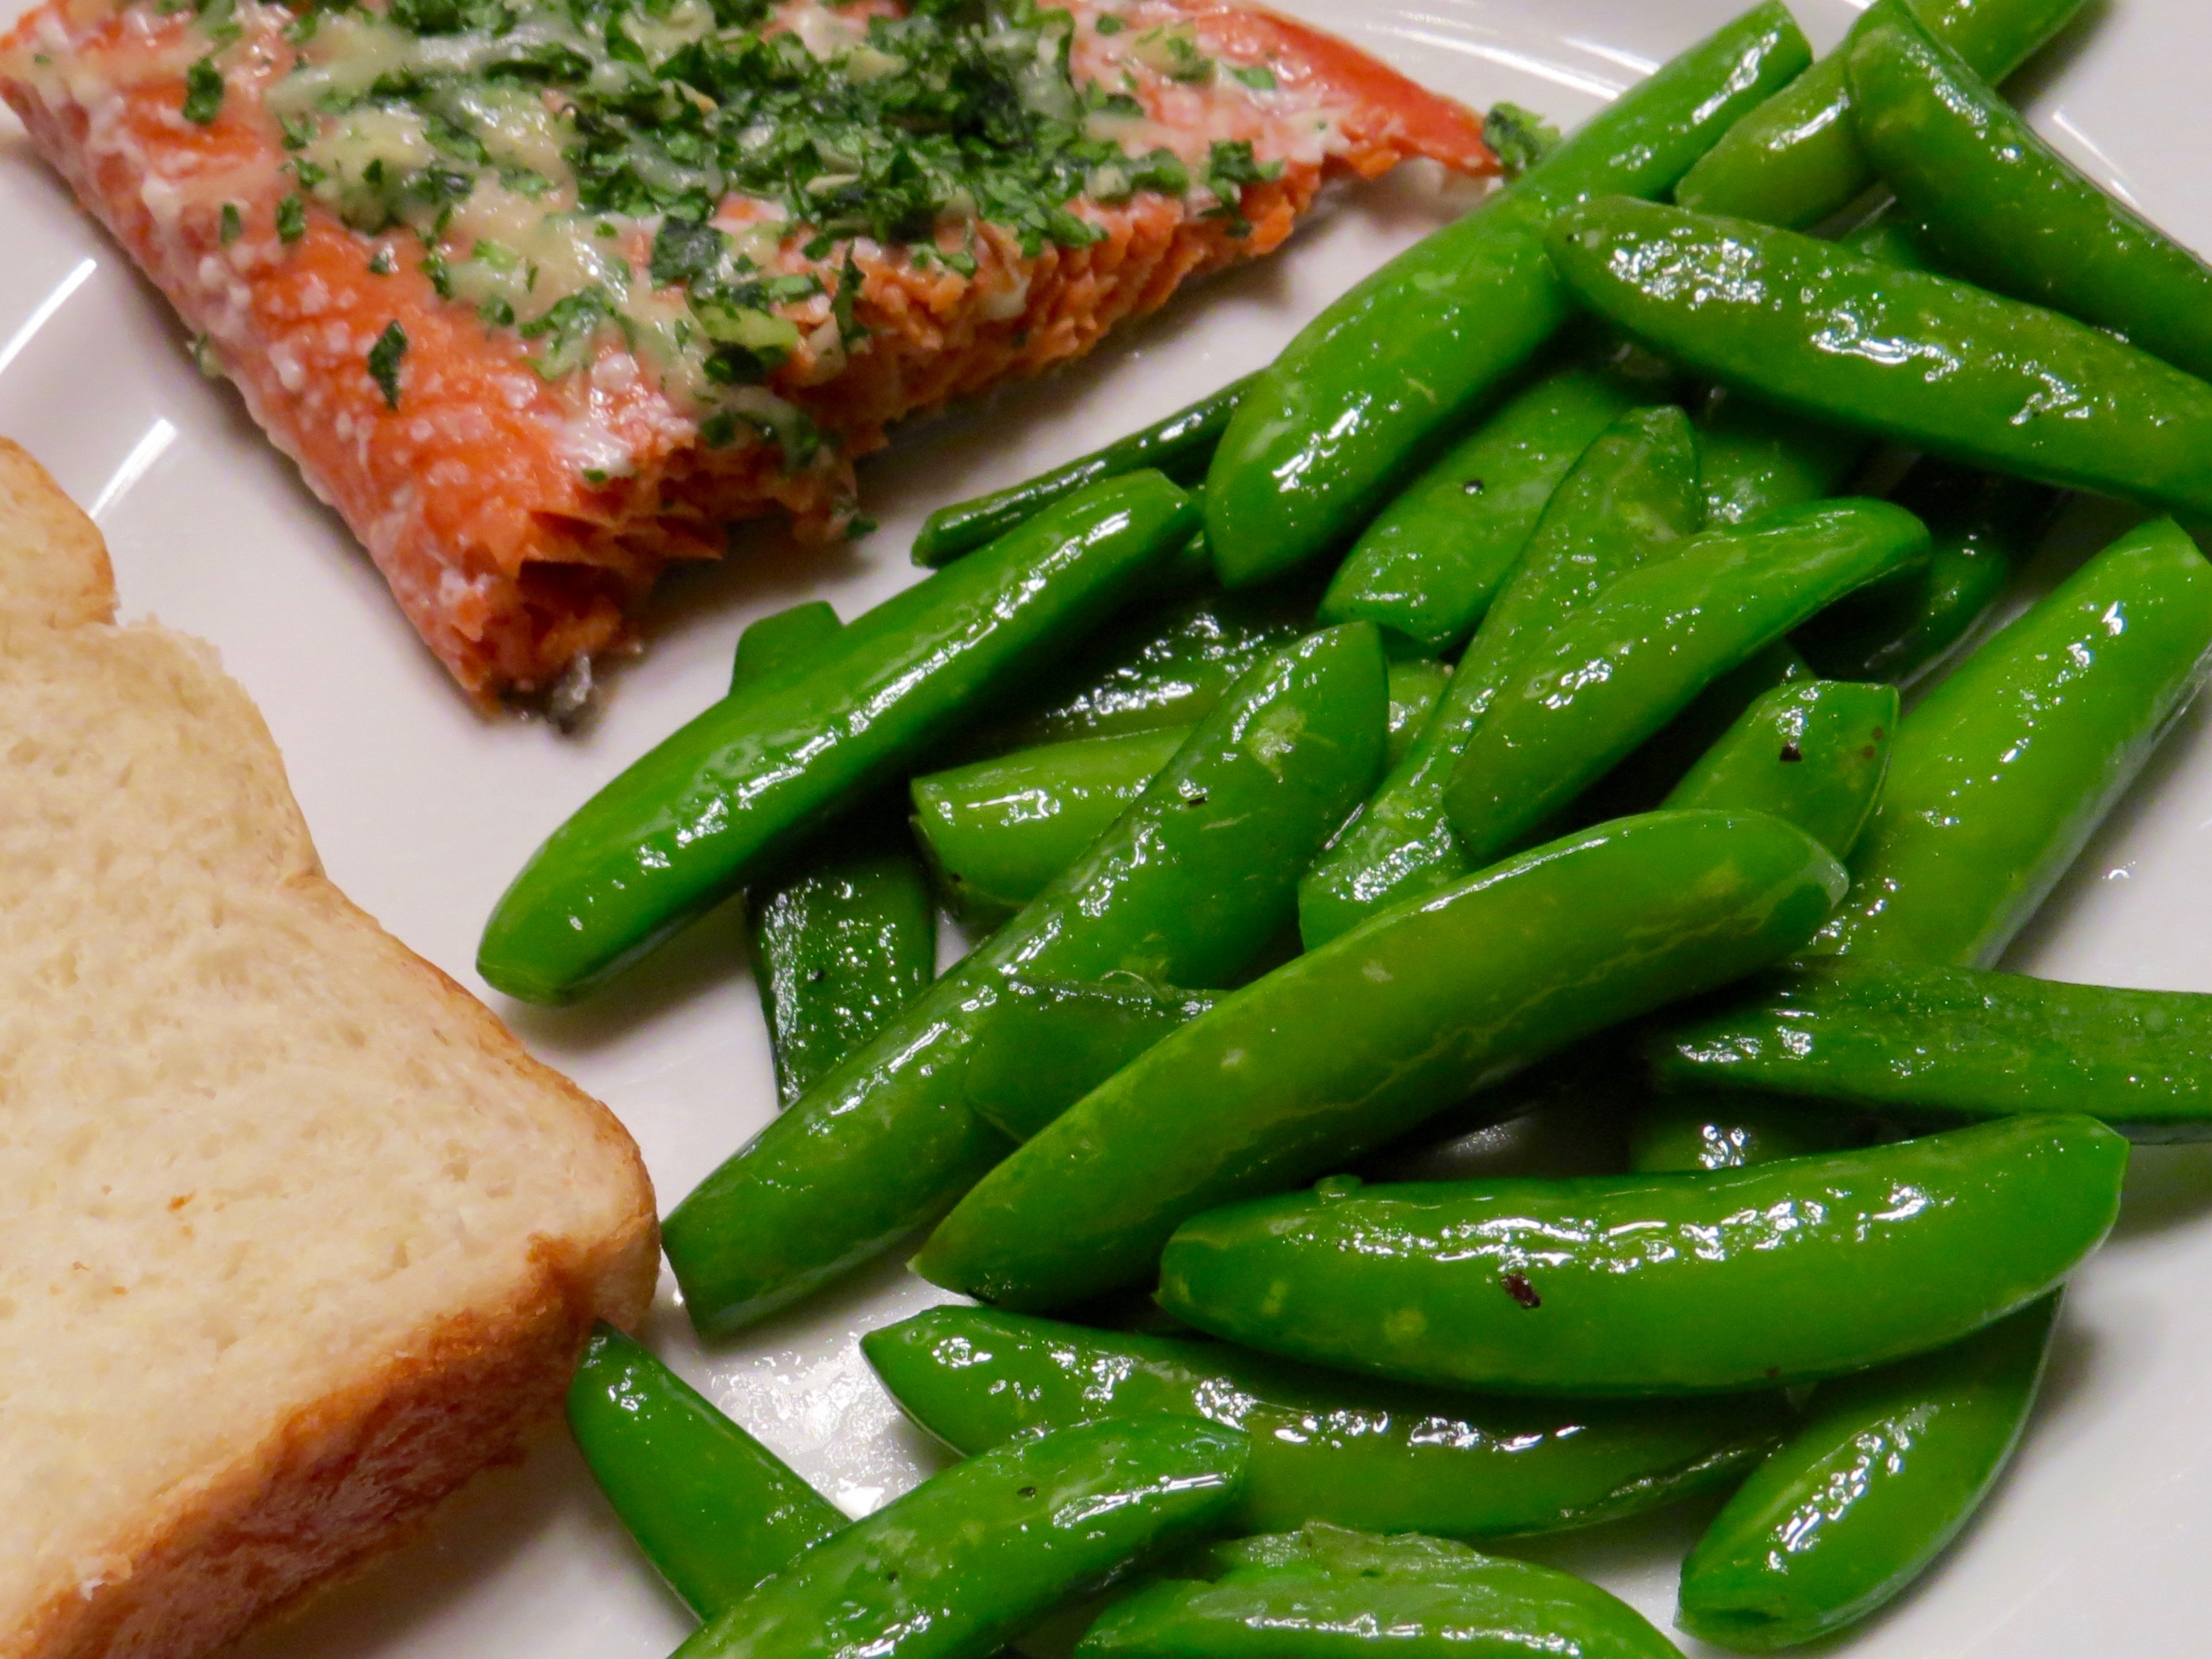 BAKED SALMON WITH PARMESAN HERB CRUST, SAUTEED SUGAR SNAP PEAS AND HOMEMADE BREAD.